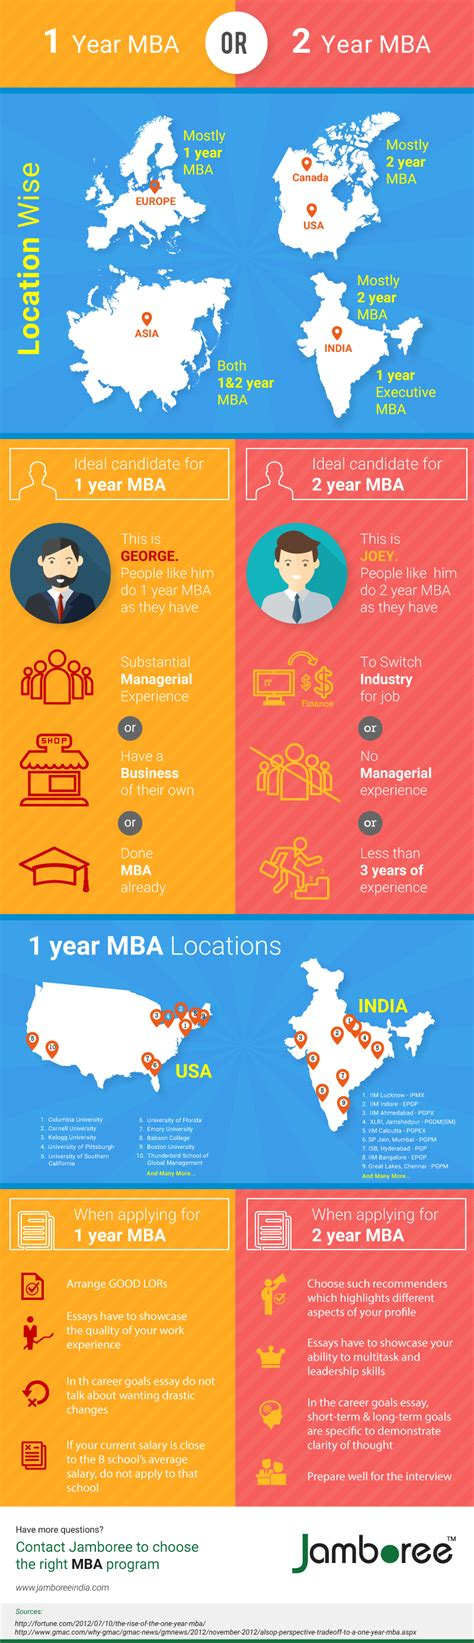 One Year Mba Programs Abroad by 1 Year Vs 2 Year Mba Jamboree India